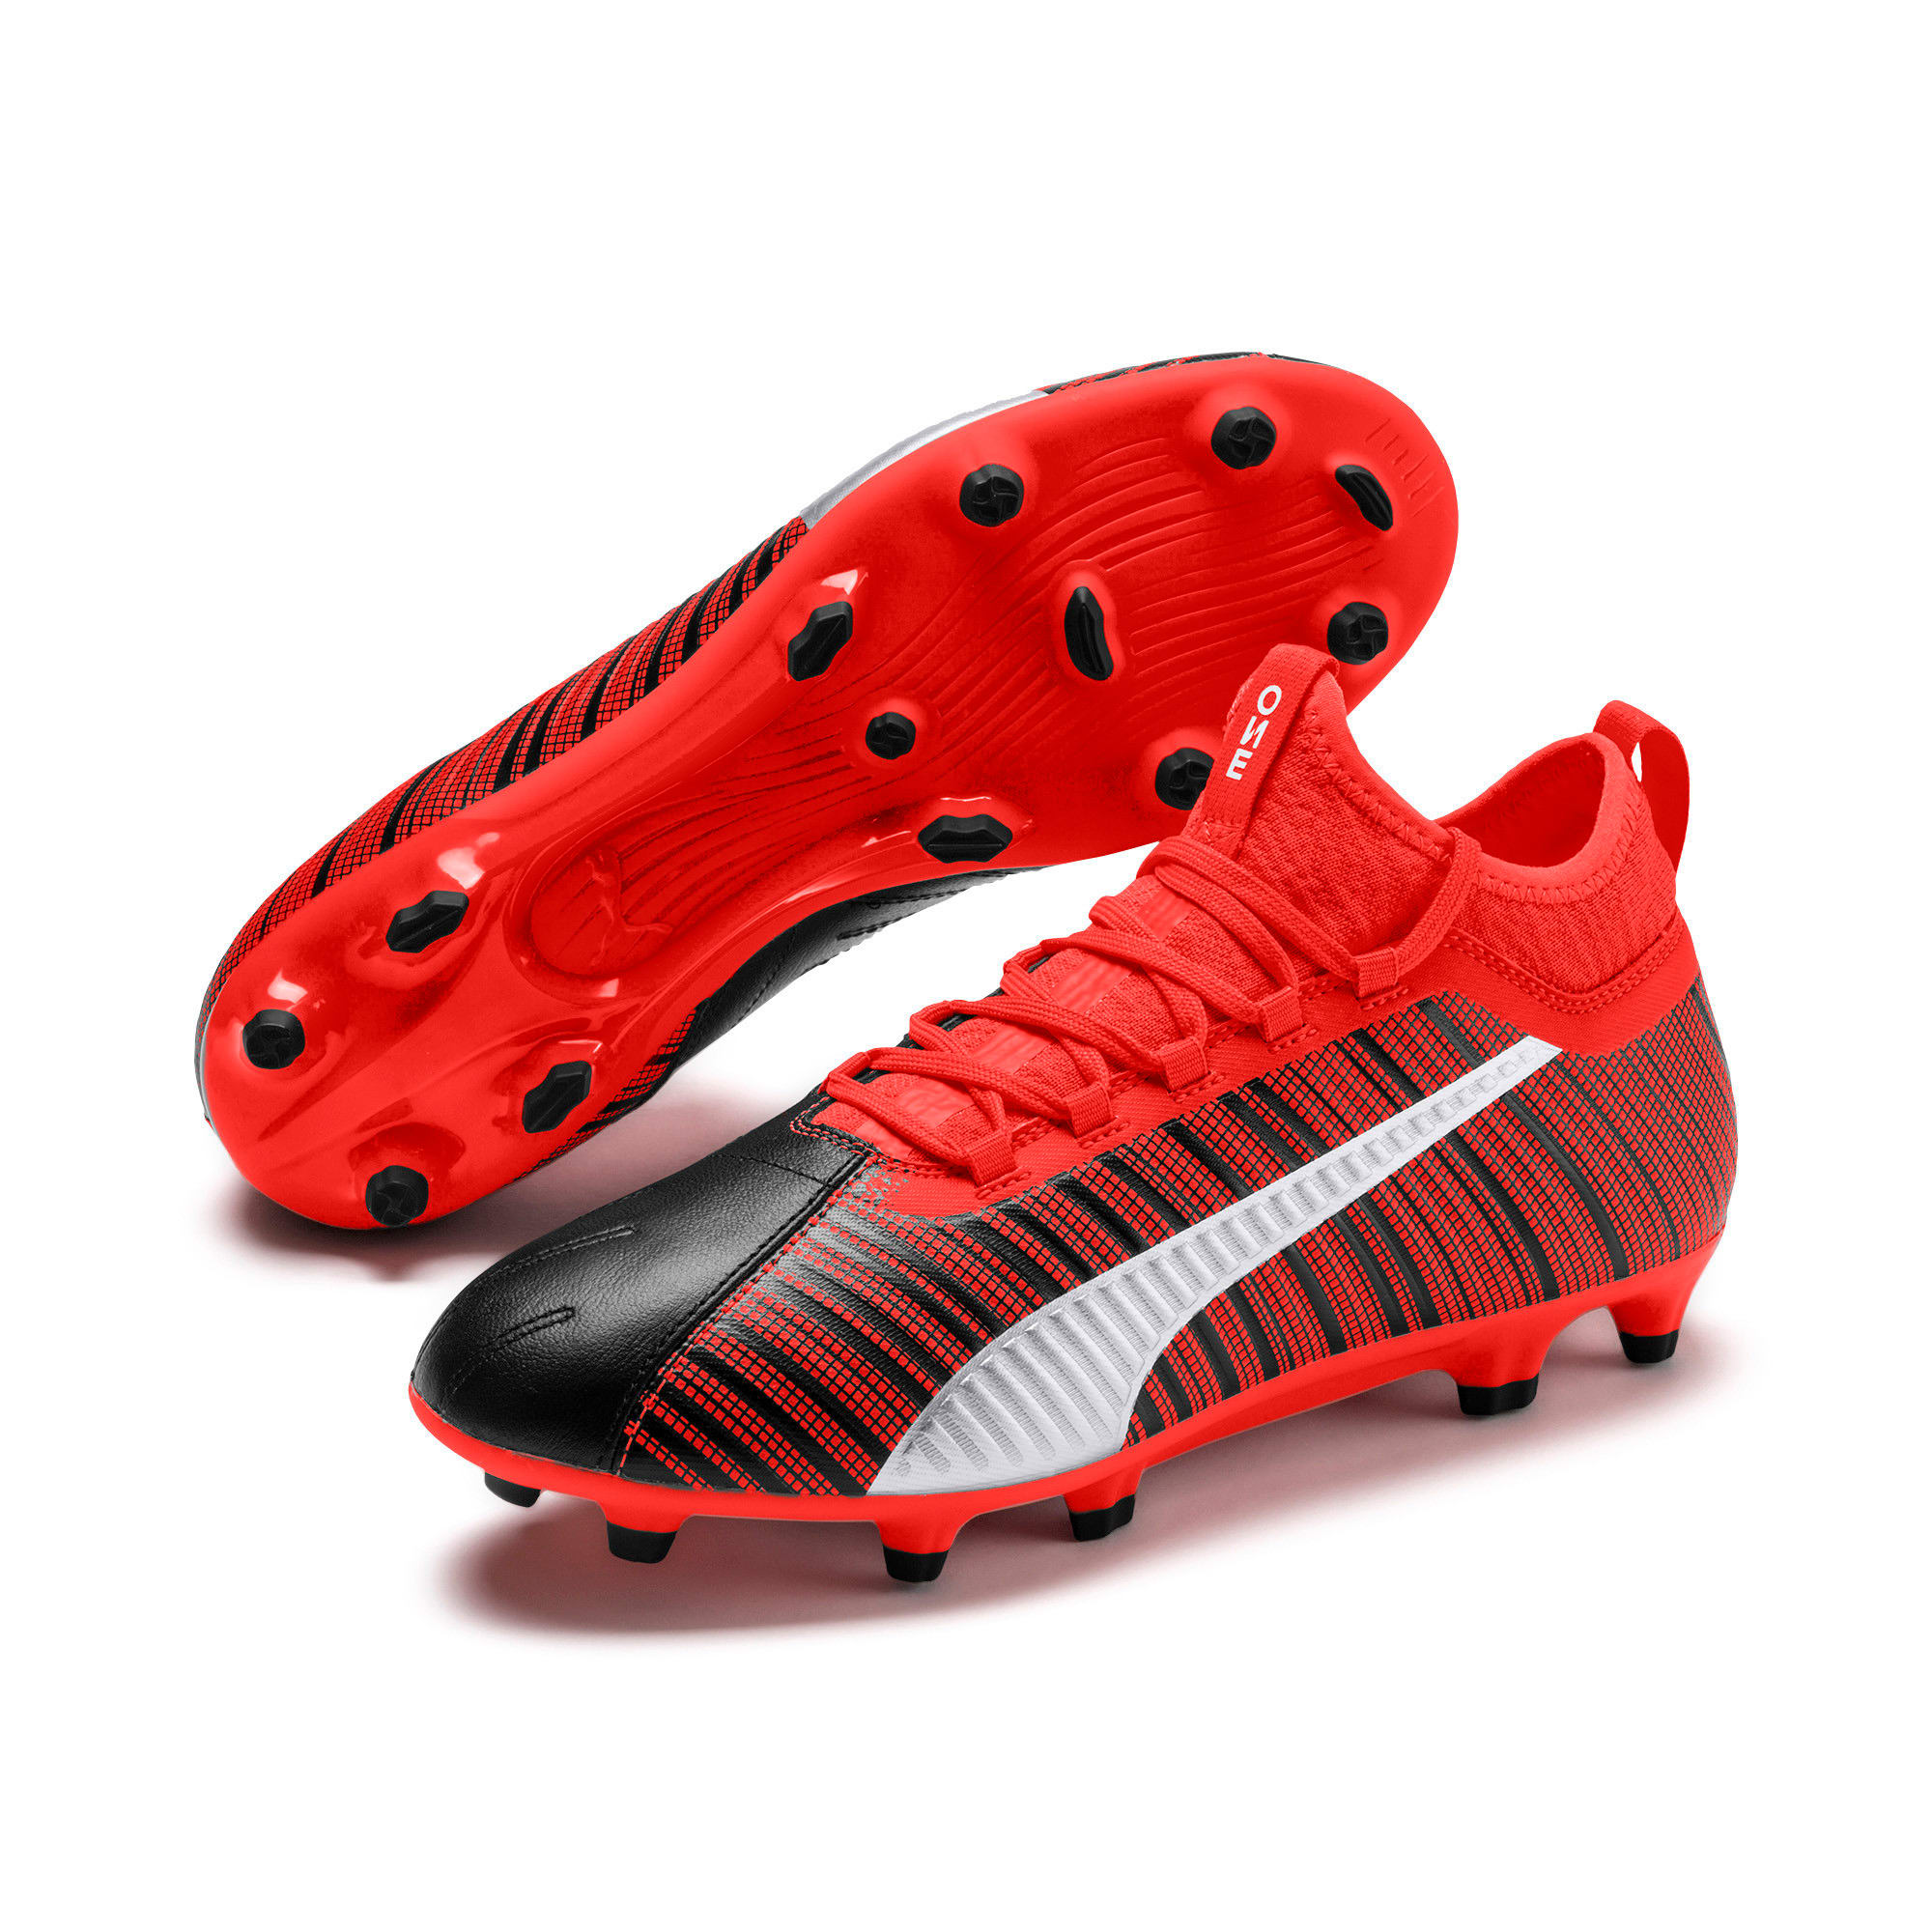 Thumbnail 3 of PUMA ONE 5.3 FG/AG Men's Soccer Cleats, Black-Nrgy Red-Aged Silver, medium